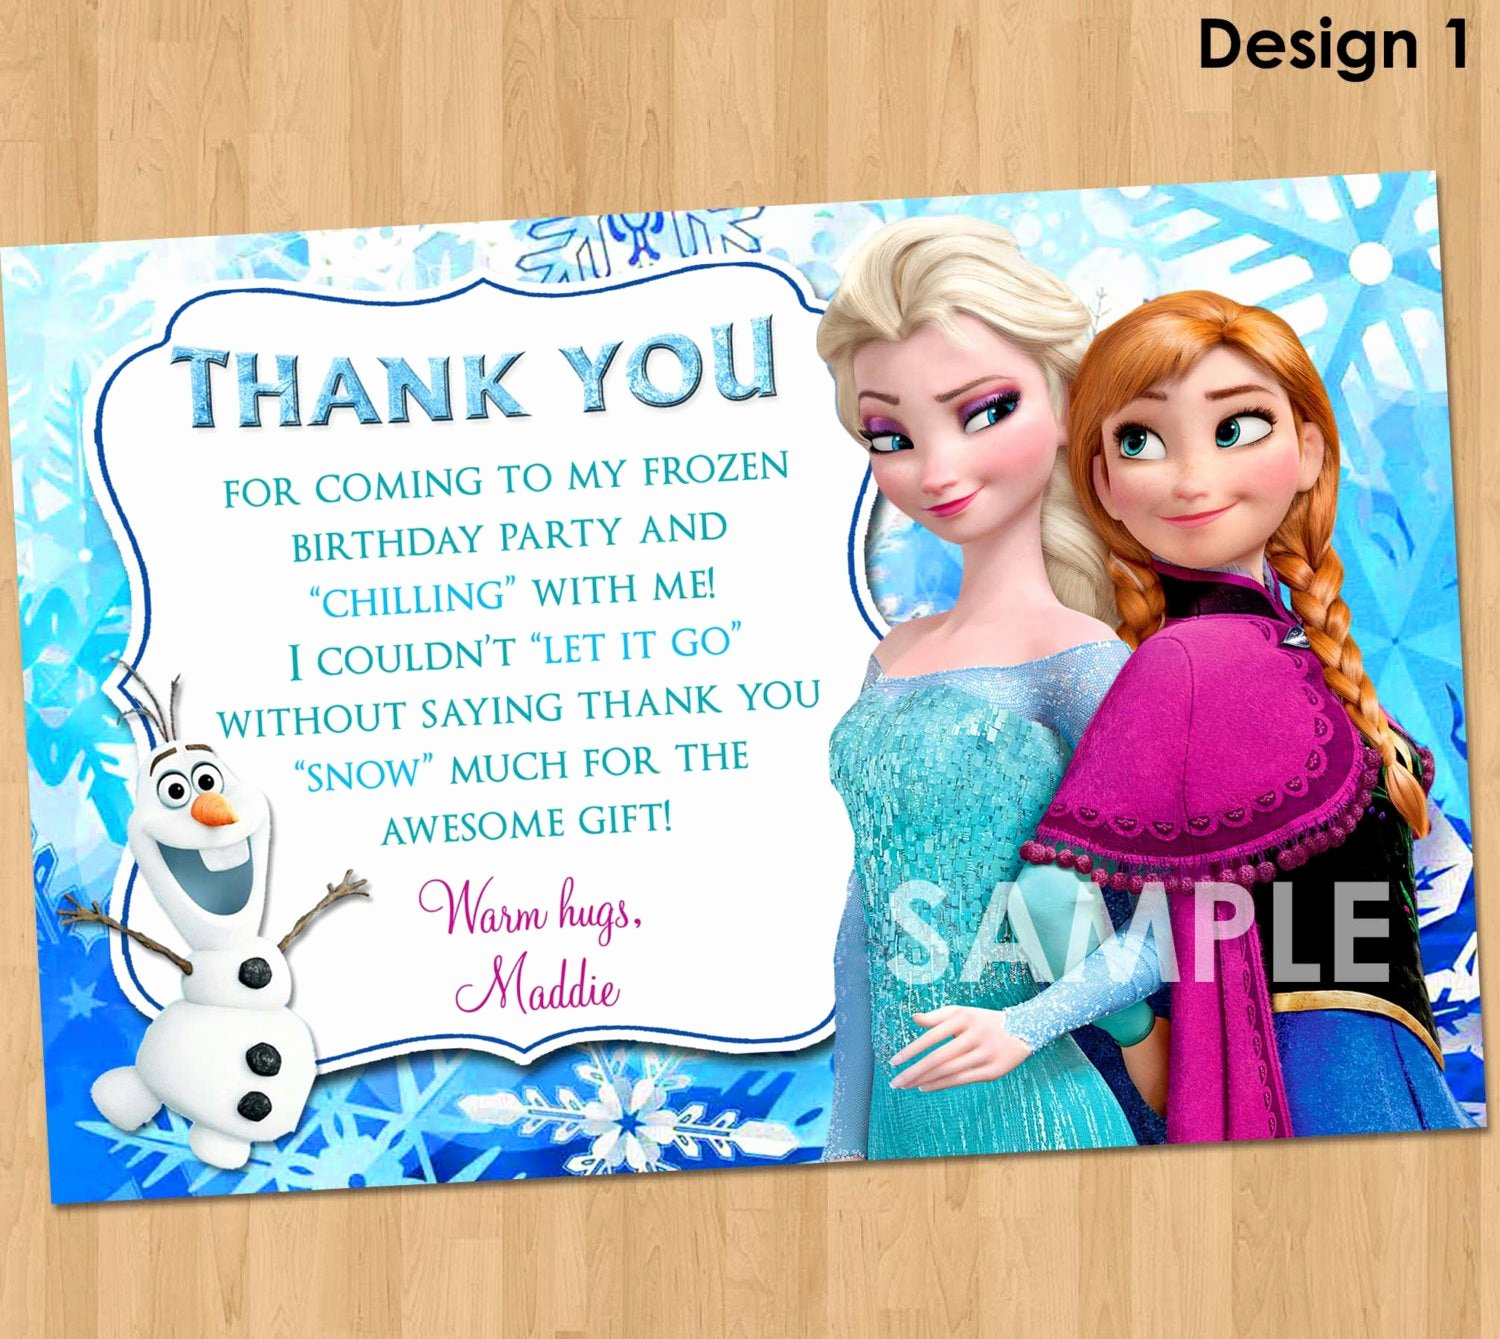 Frozen Birthday Card Printable Elegant Frozen Thank You Card Printable Frozen Thank You Note Matches